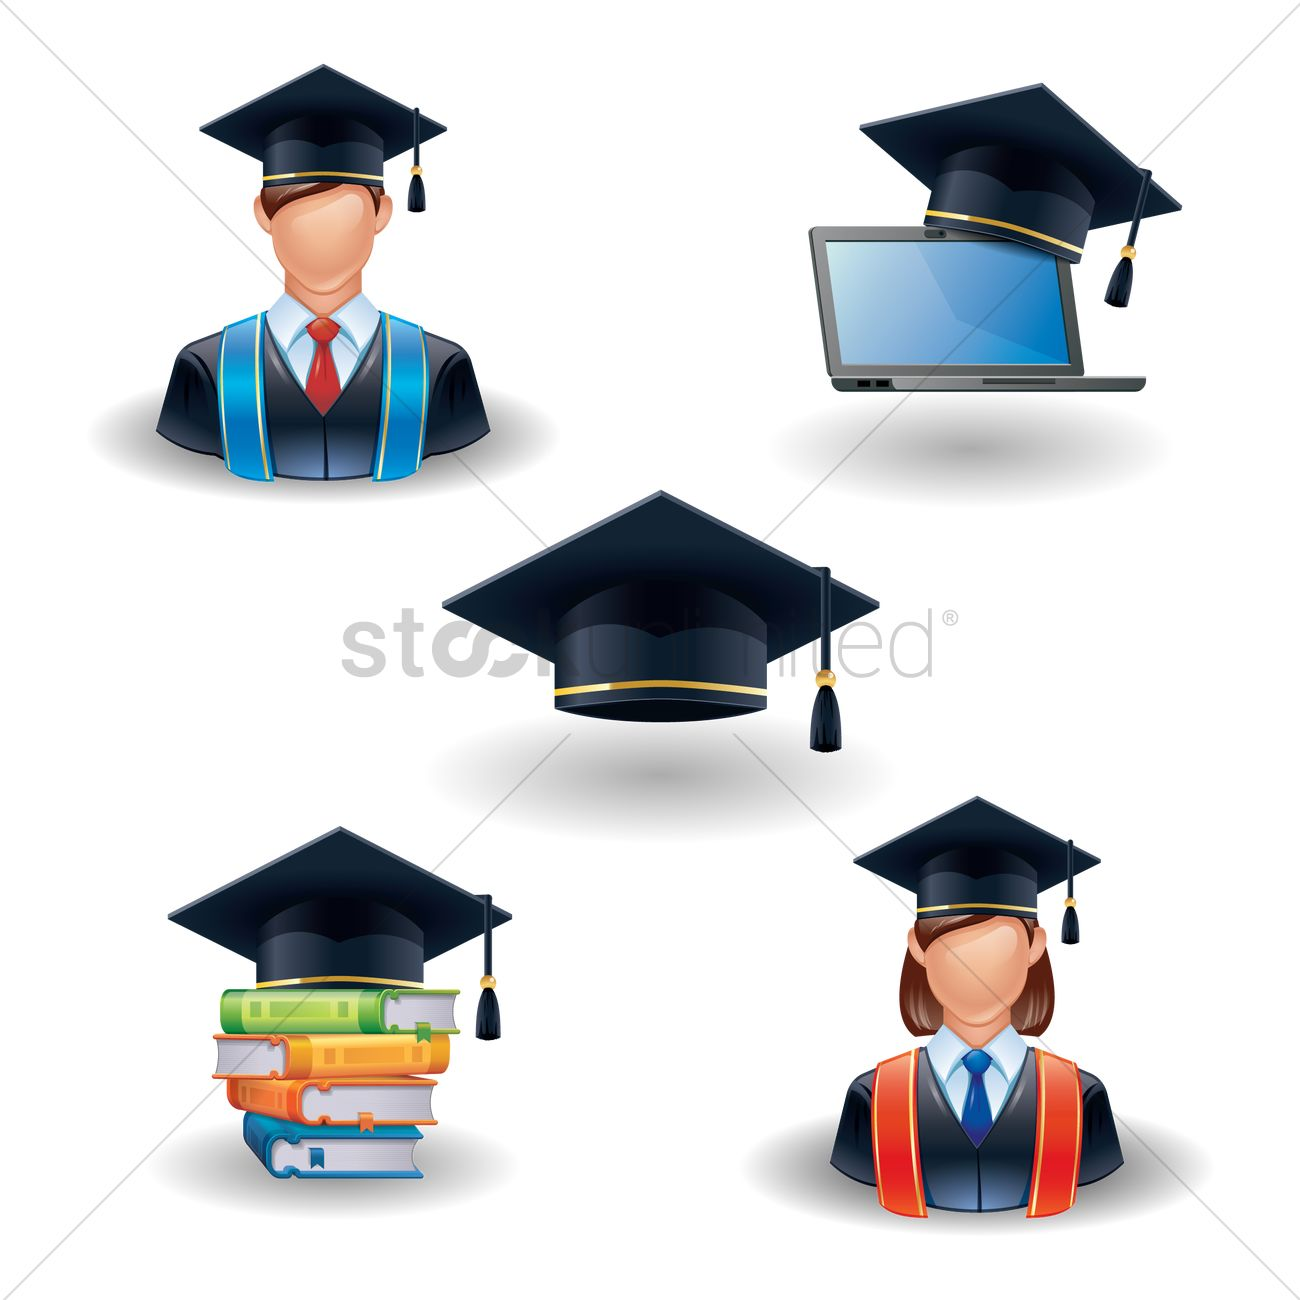 Graduation icons Vector Image - 1536064 | StockUnlimited